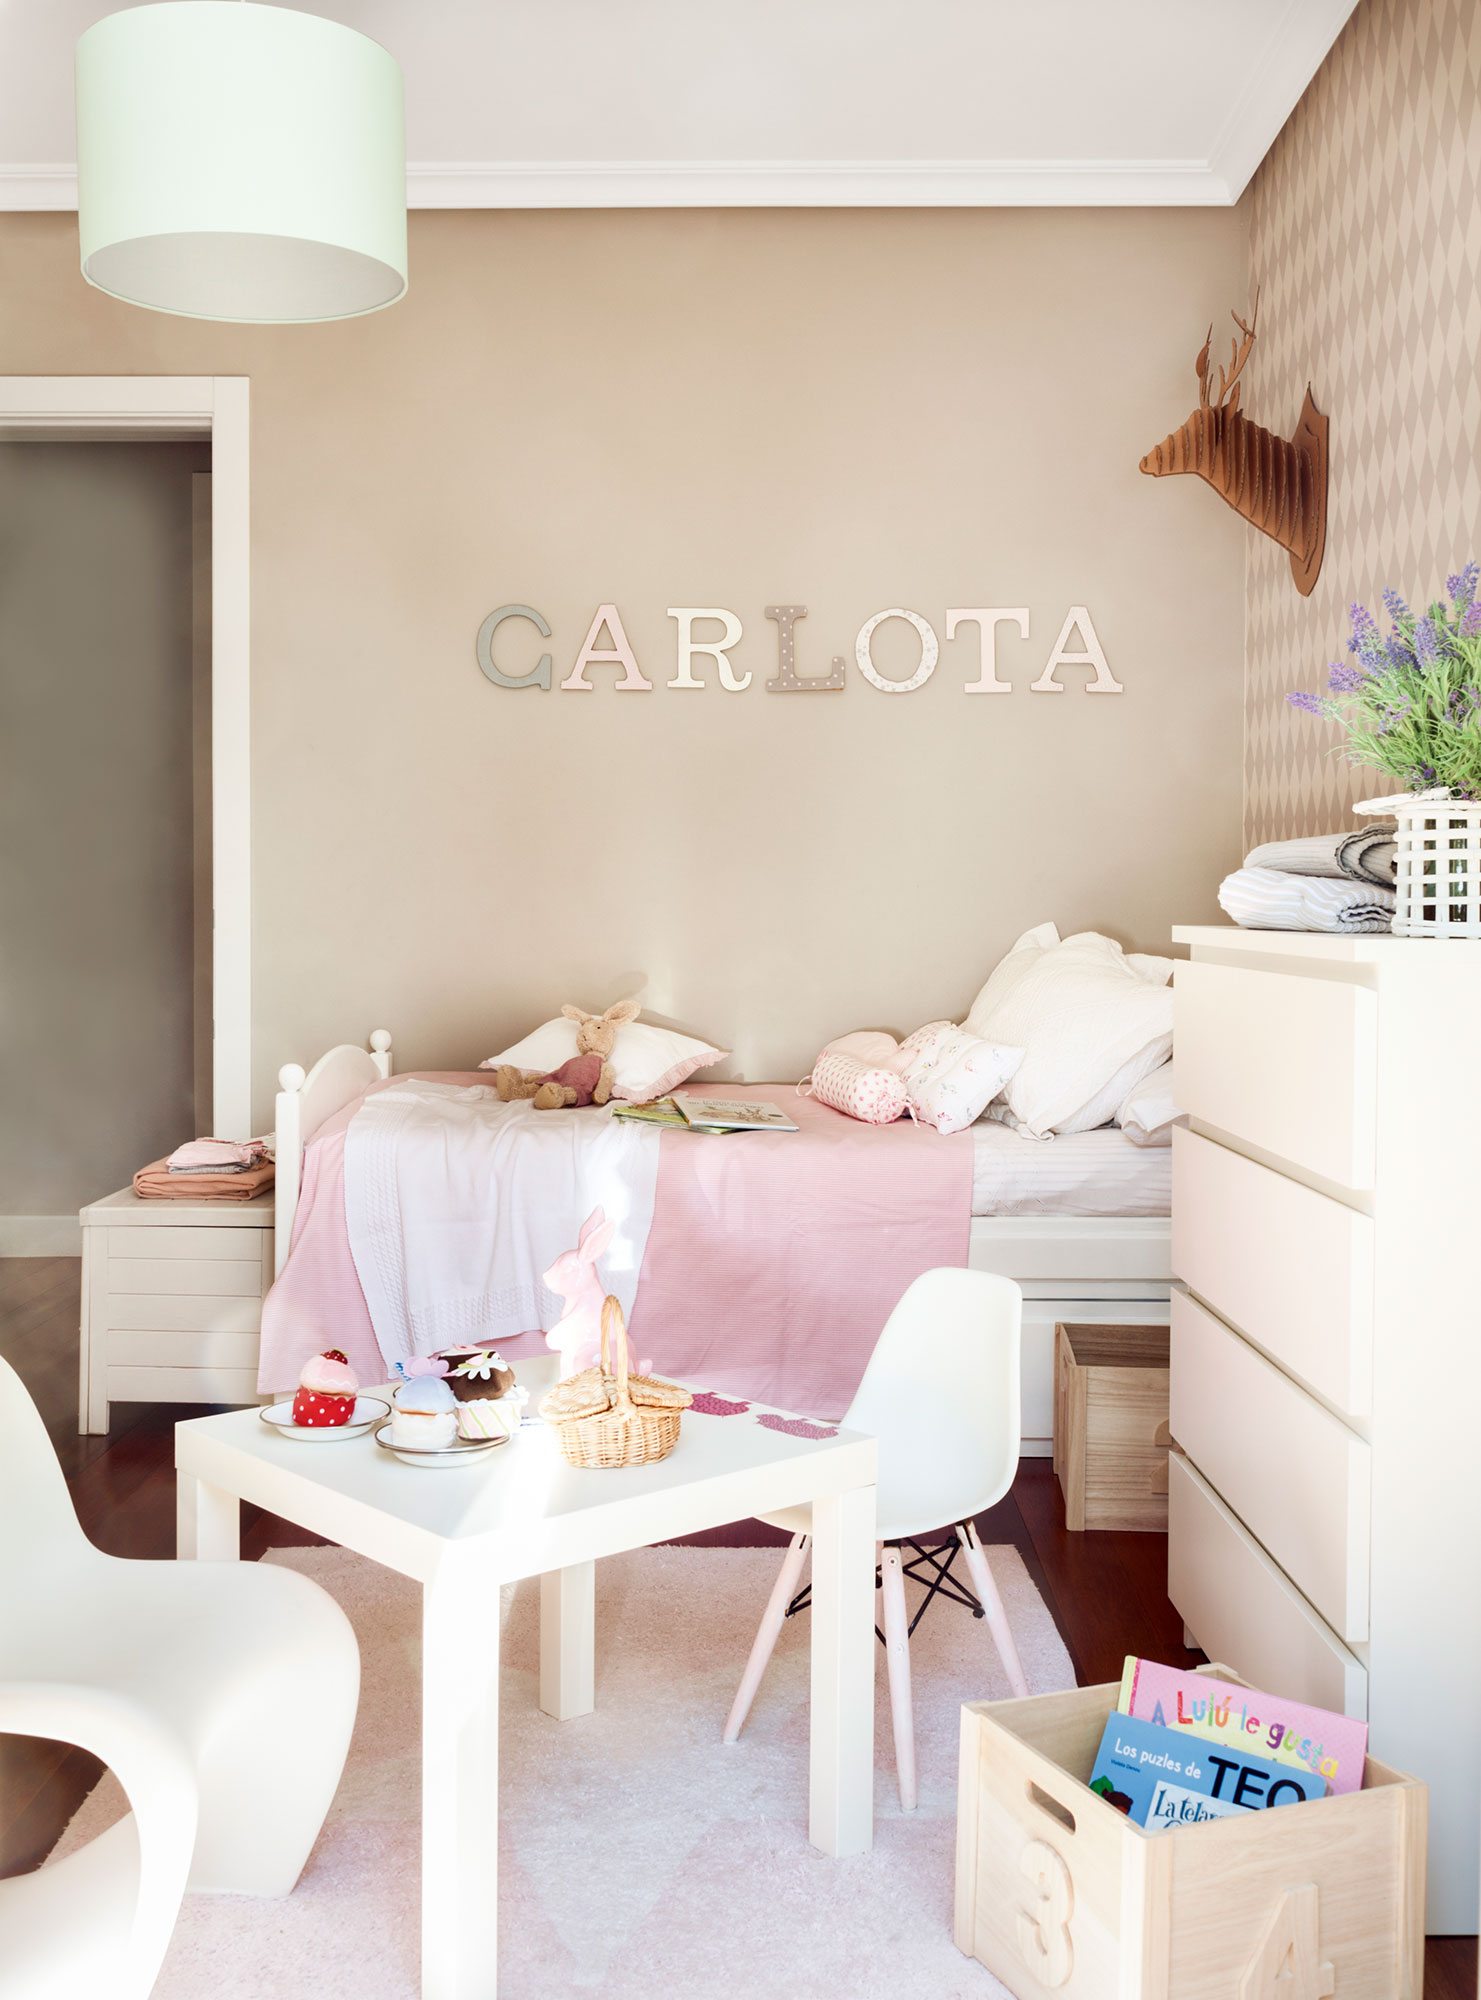 Letras Pared. Letras Pared. Perfect Letras Pared Decoracion With ...